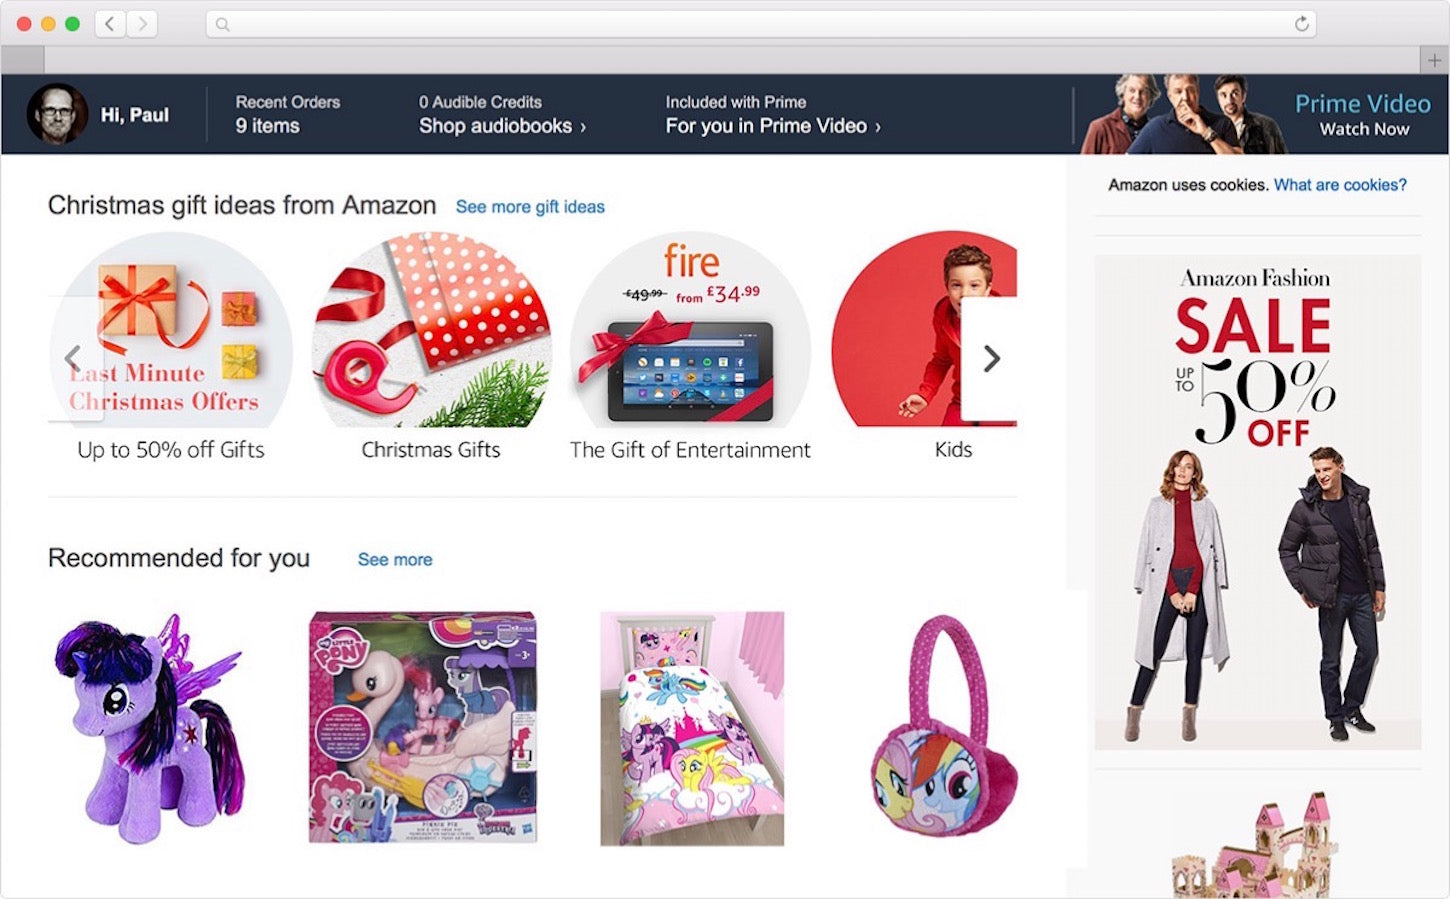 personalizing ecommerce: my little pony